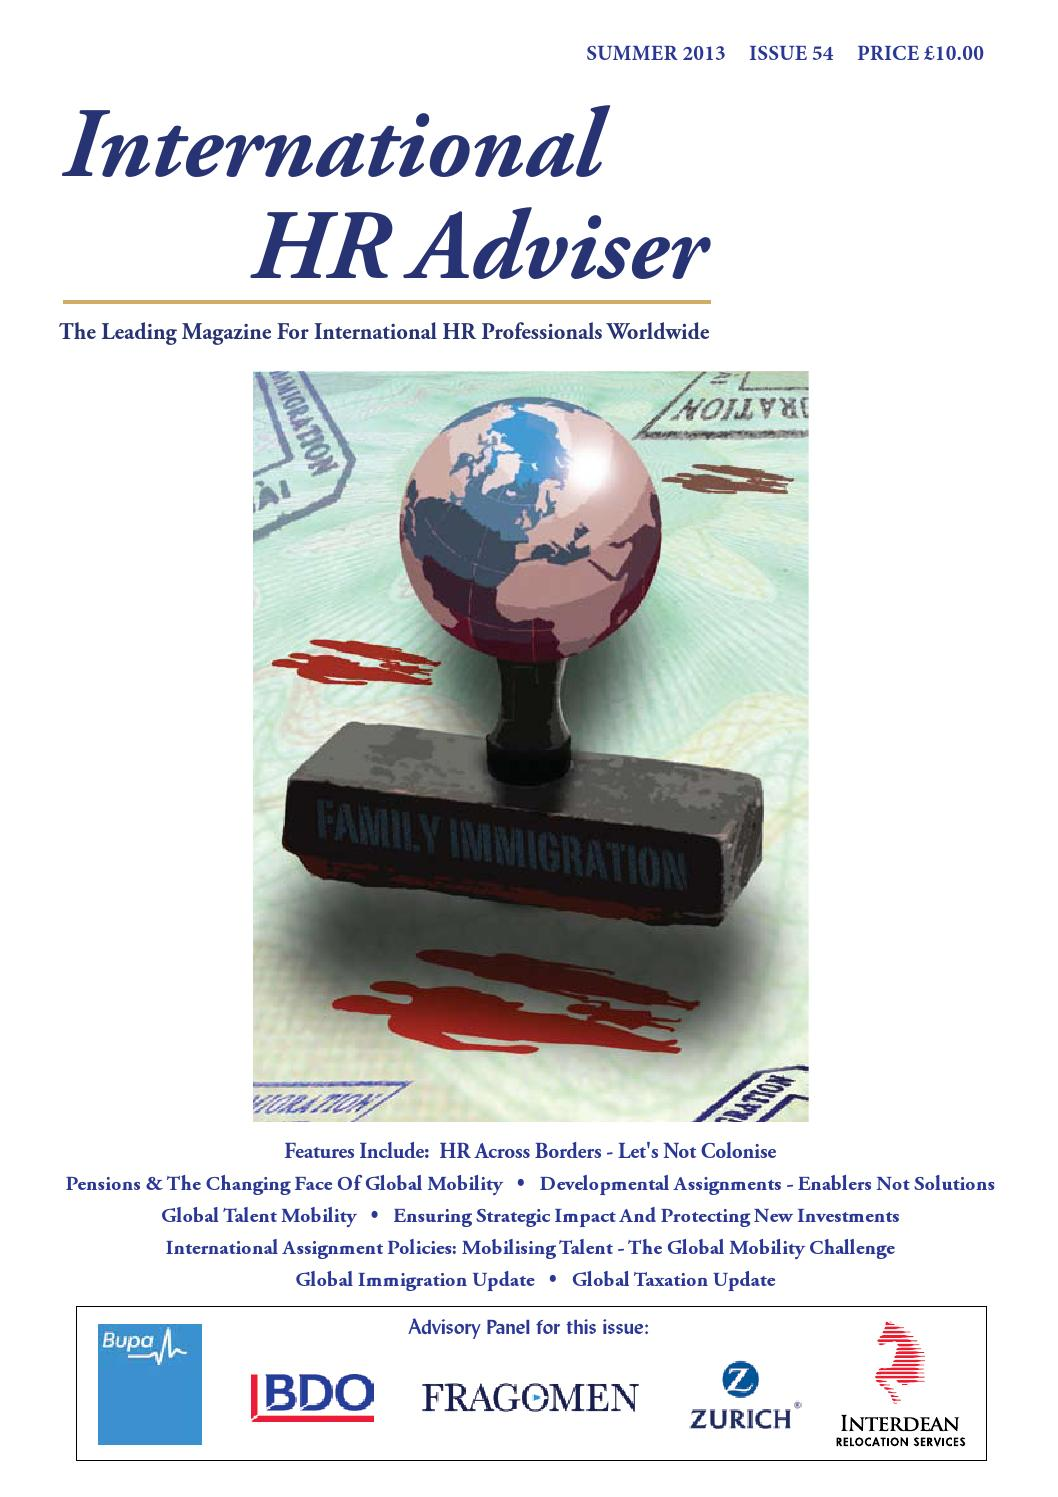 International HR Adviser Summer 2013 by International HR